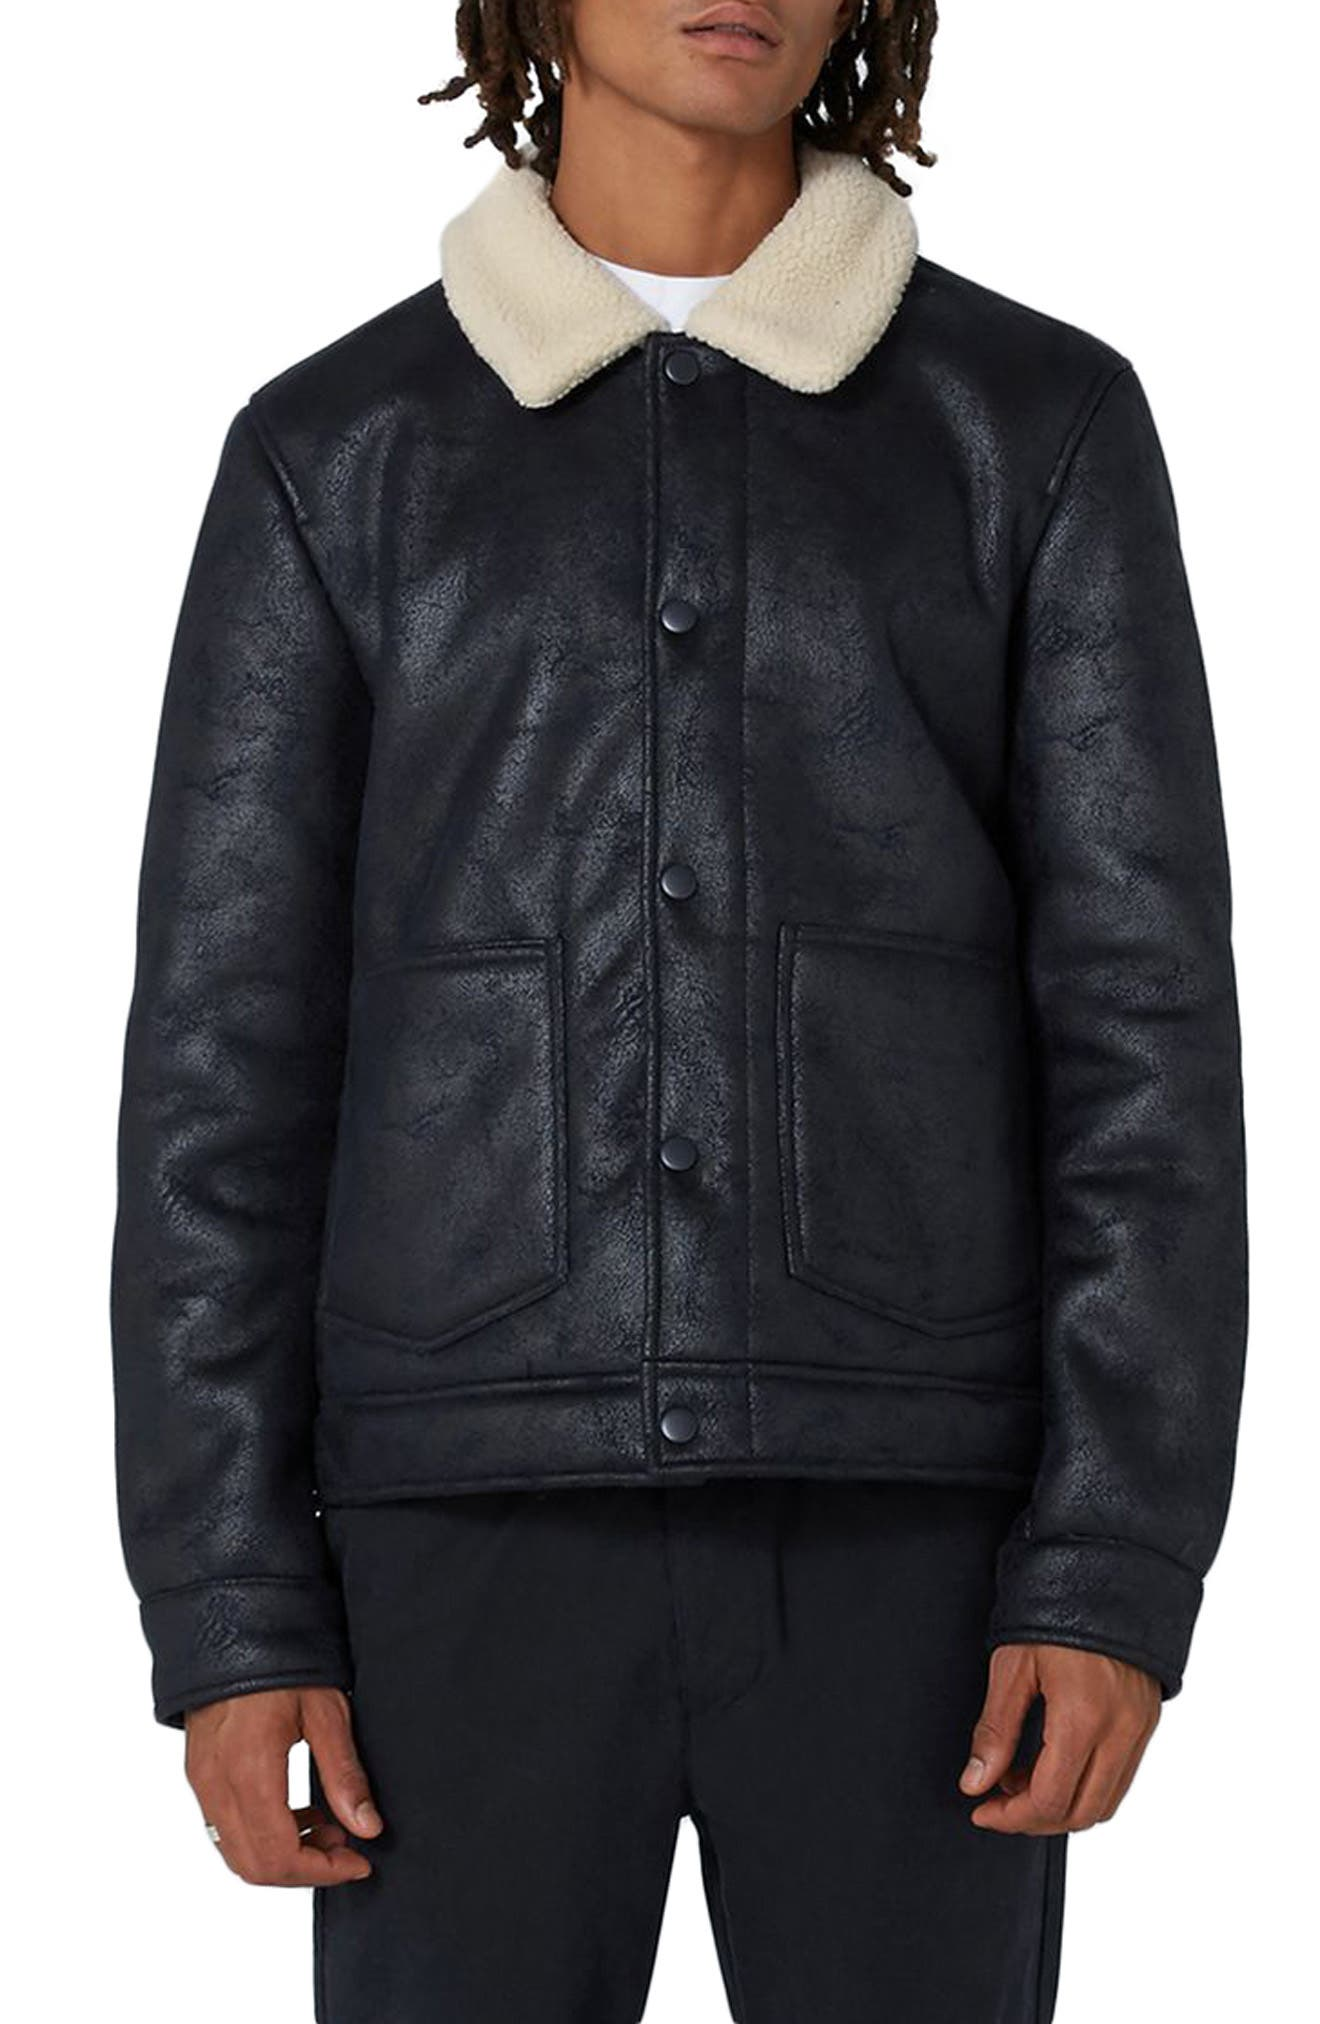 Alternate Image 1 Selected - Topman Faux Shearling Jacket